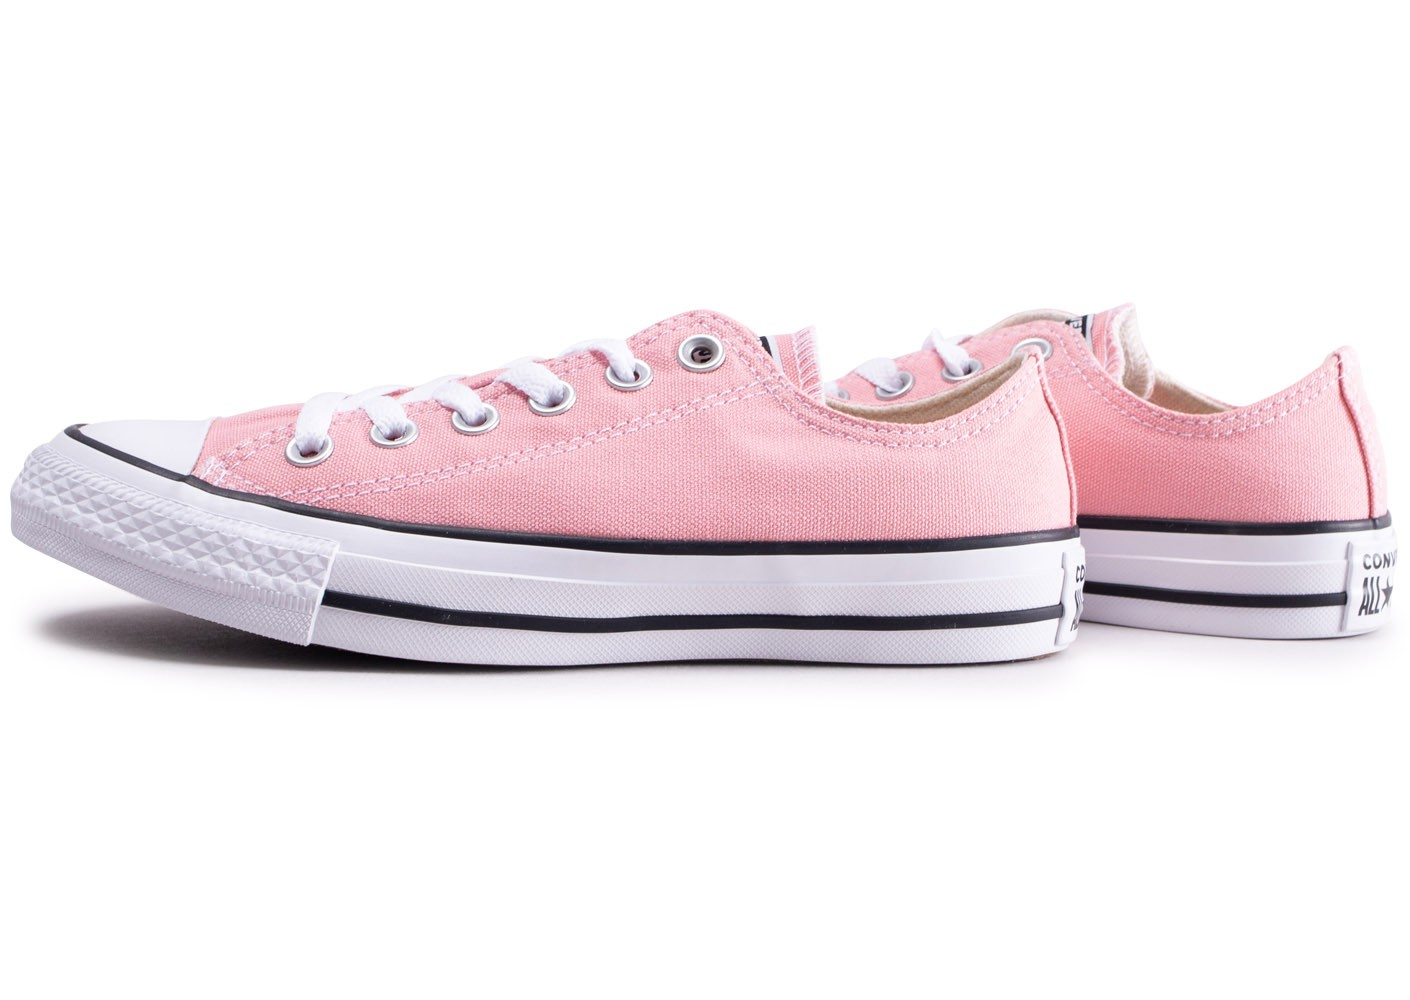 Converse Chuck Taylor All Star Low rose femme - Chaussures ...